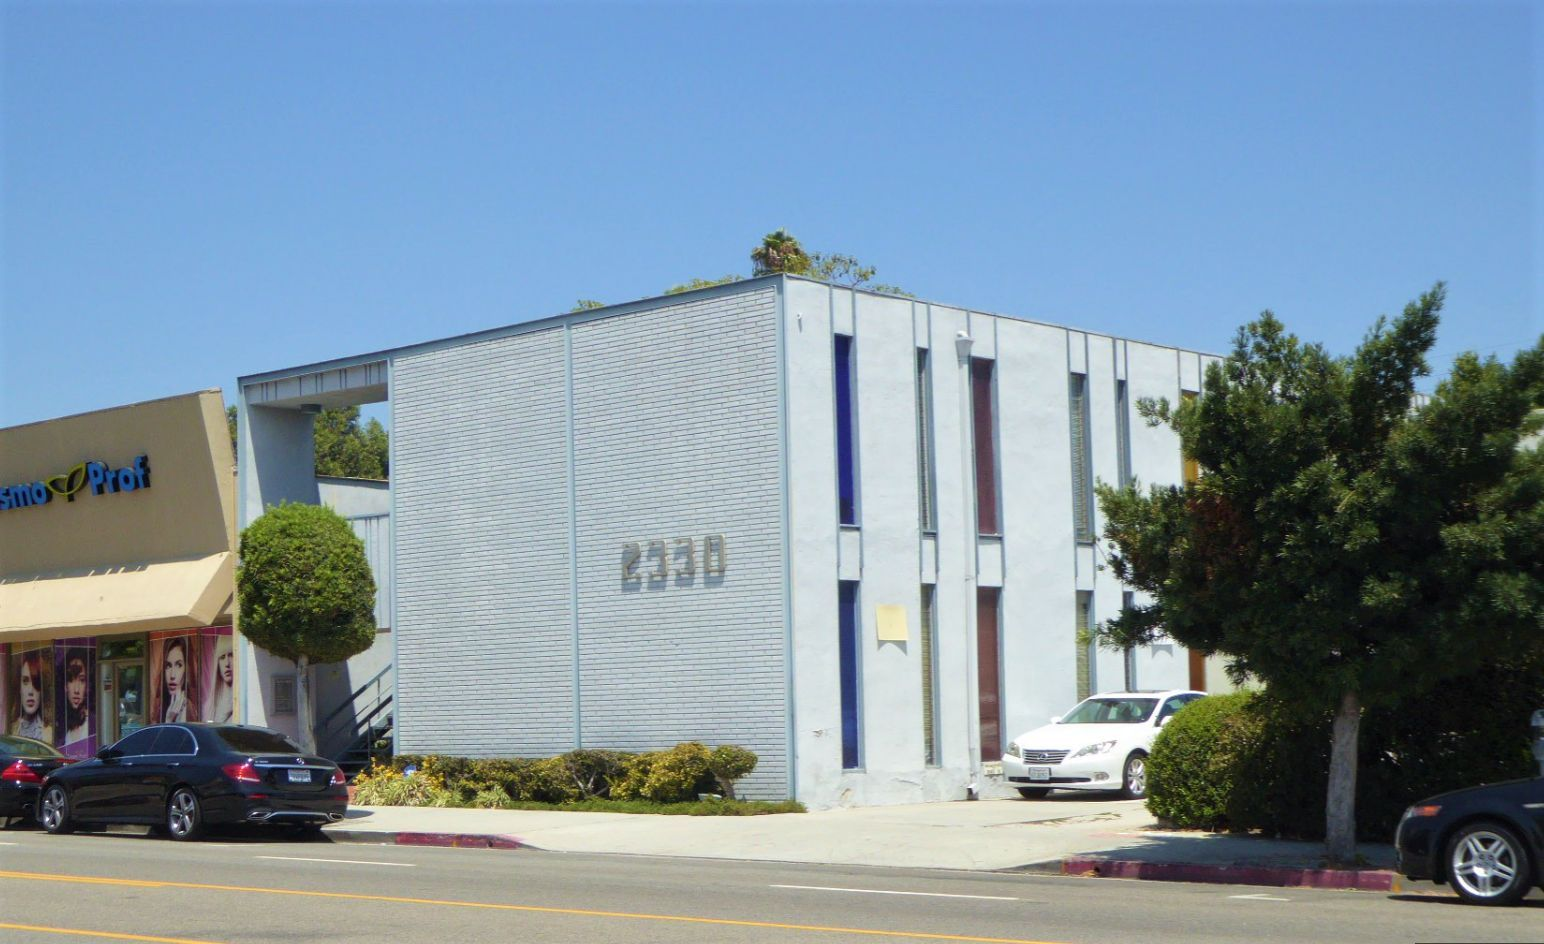 COLDWELL BANKER COMMERCIAL WESTMAC ARRANGES $2.3 MILLION SALE TO OWNER-USER IN WEST LOS ANGELES, CA